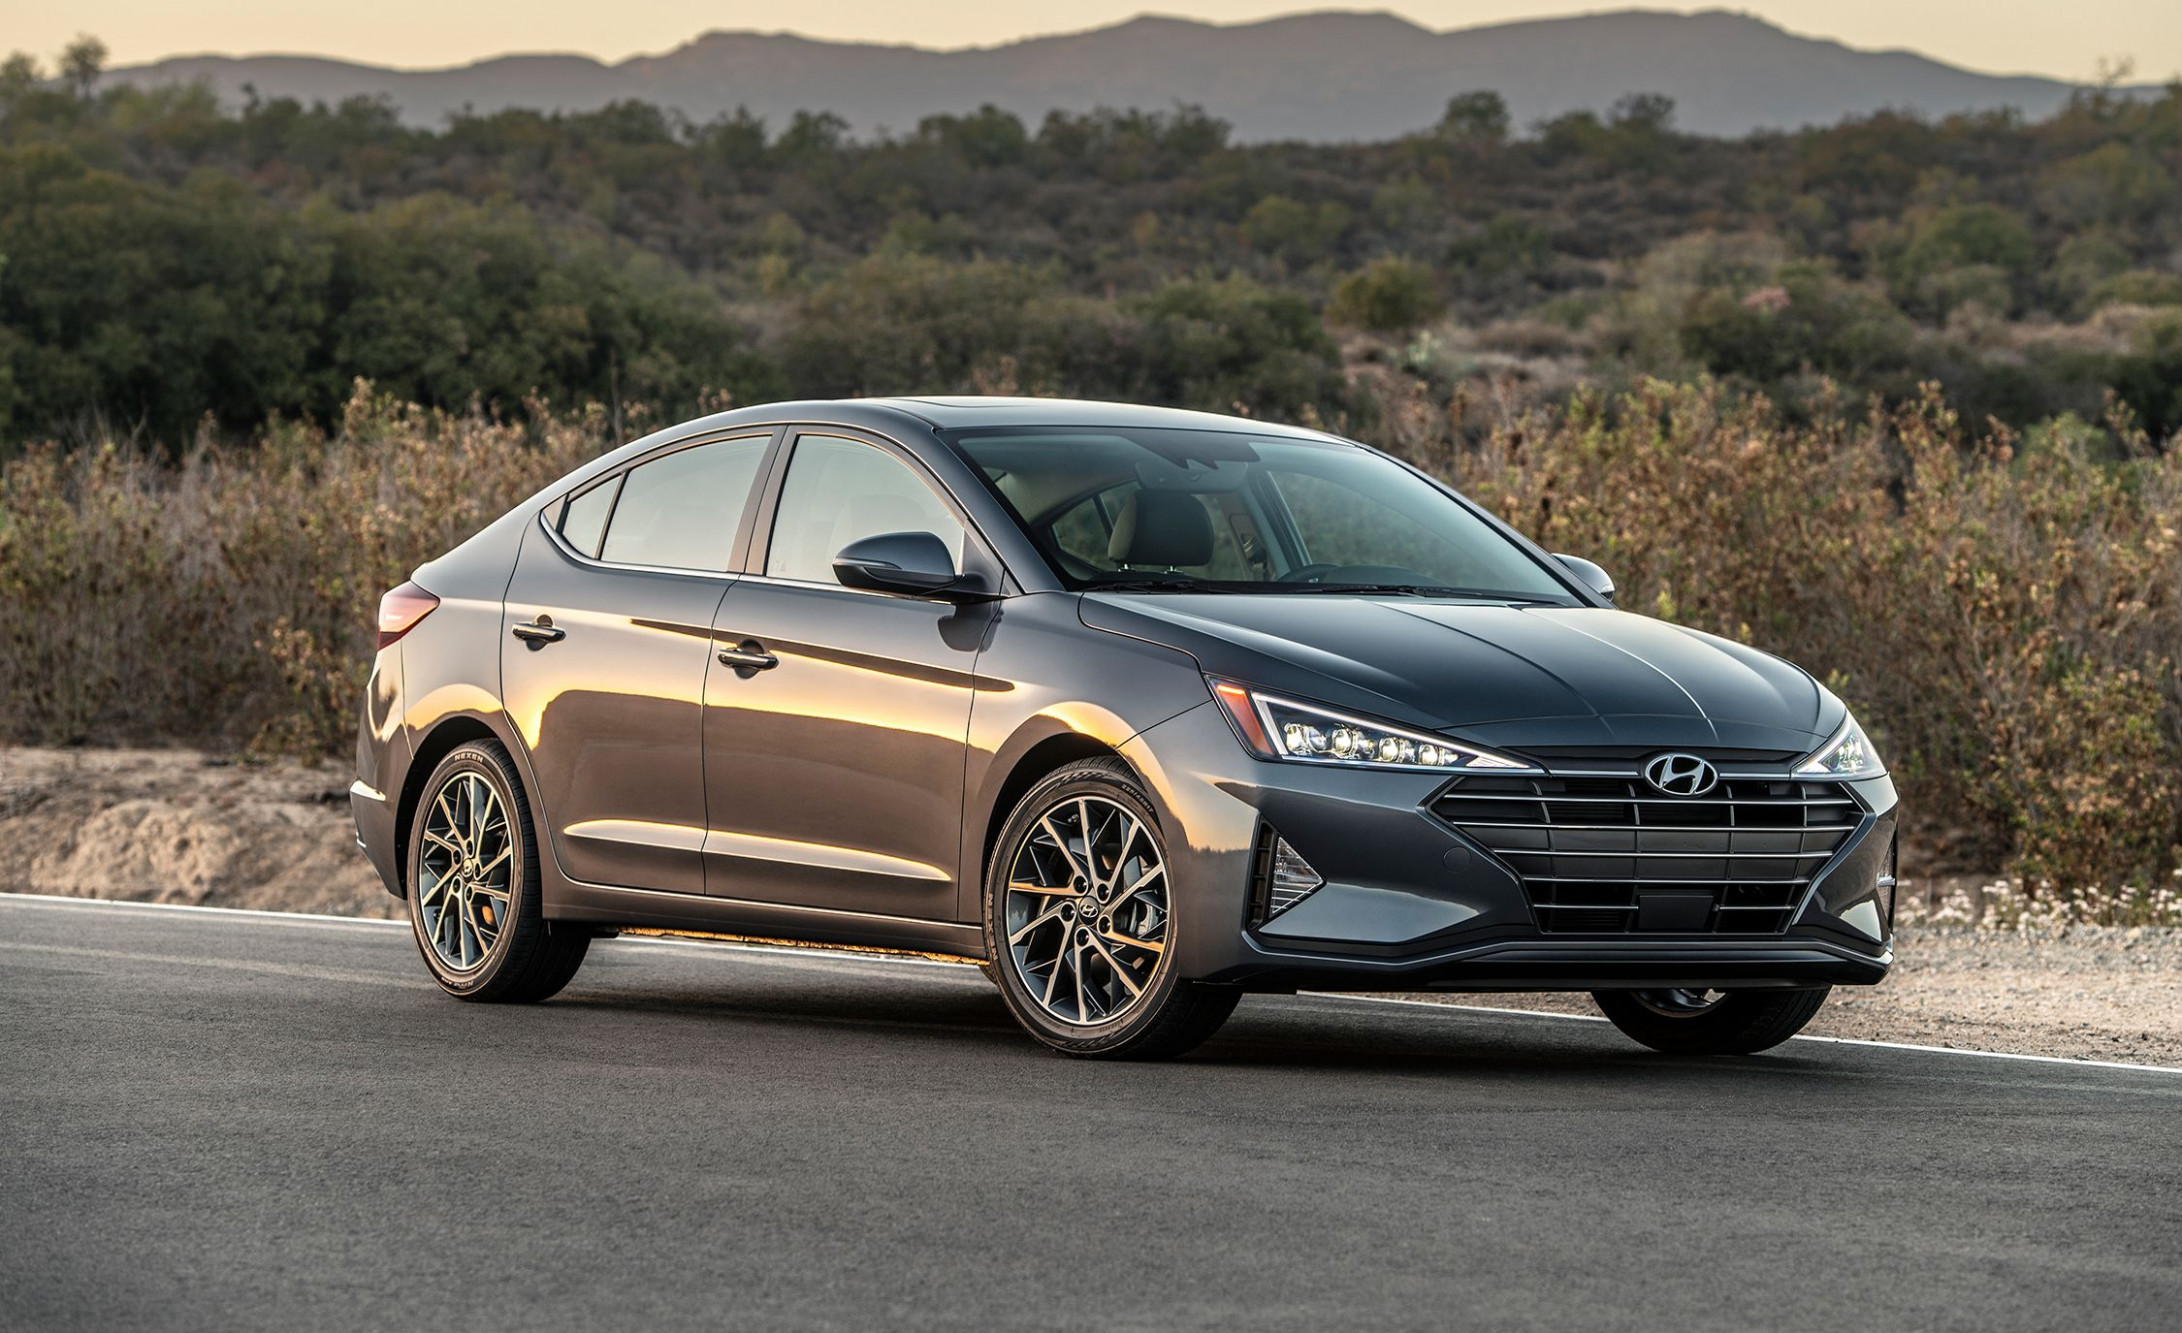 5 Hyundai Elantra Drops Manual Transmission and Gets a CVT | 2020 Hyundai Elantra Gas Mileage